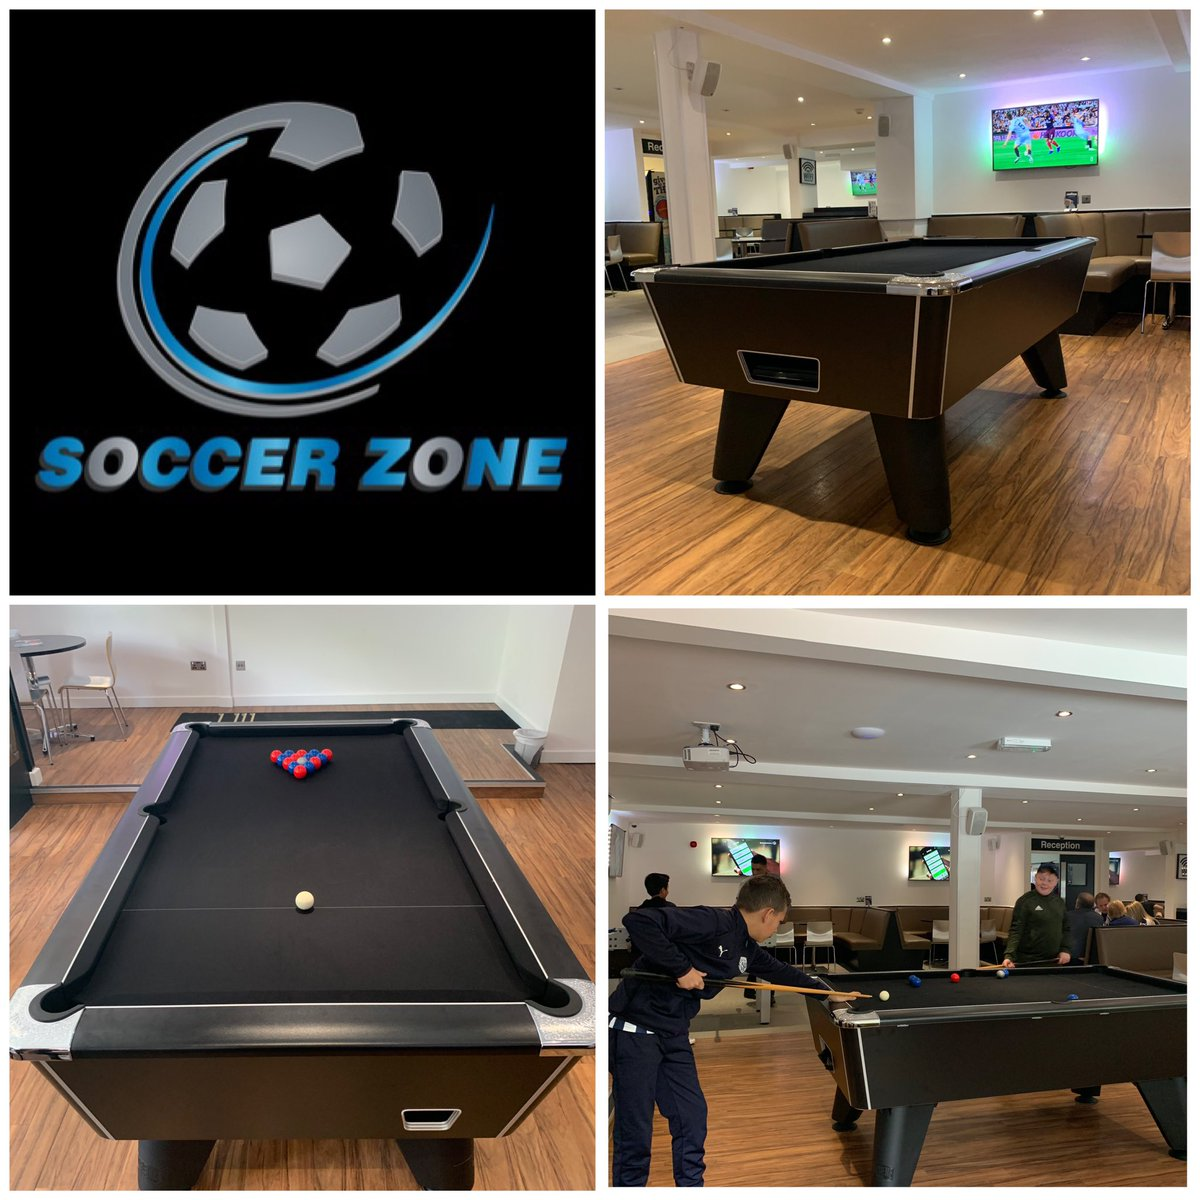 Soccer Zone Halesowen On Twitter At Soccer Zone We Now Have A Full Size Pool Table Come Down And Play Pool With Your Friends It S Only 1 A Game We